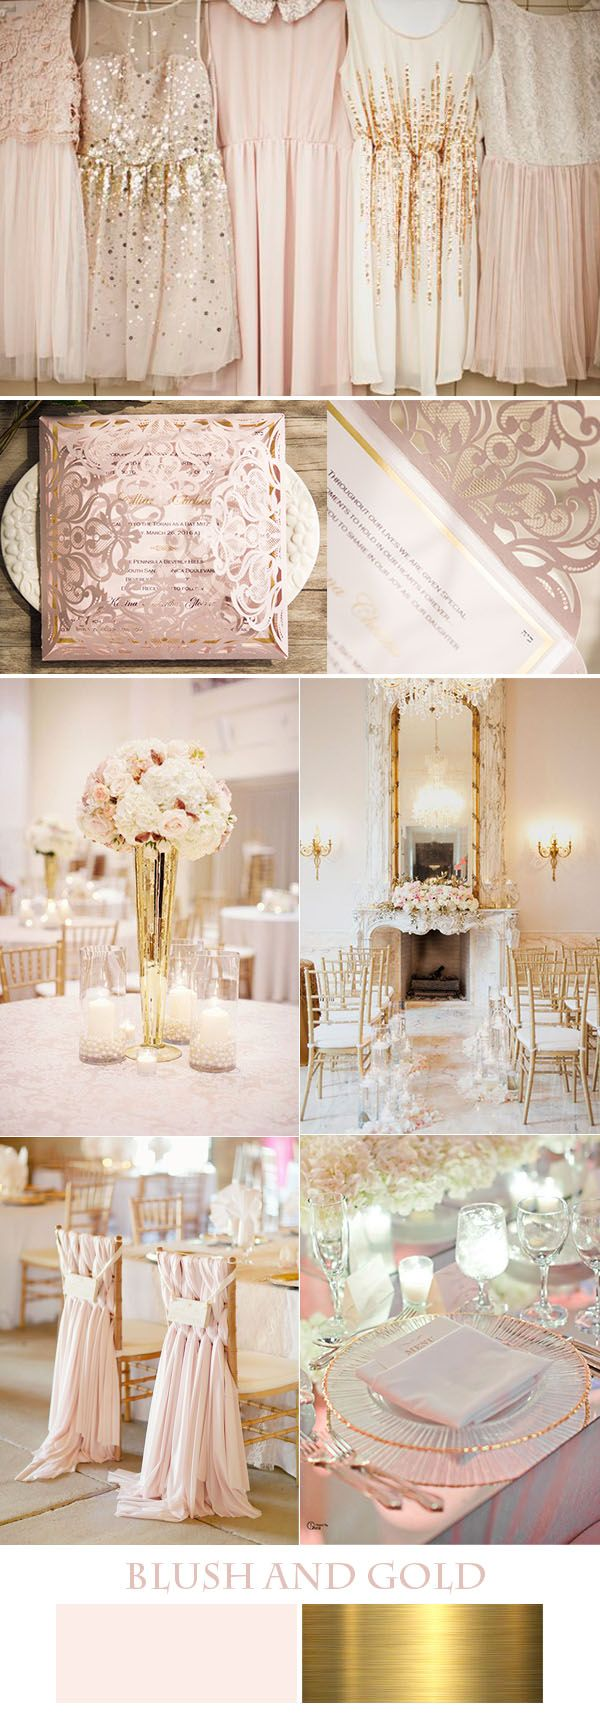 elegant blush pink and gold wedding ideas